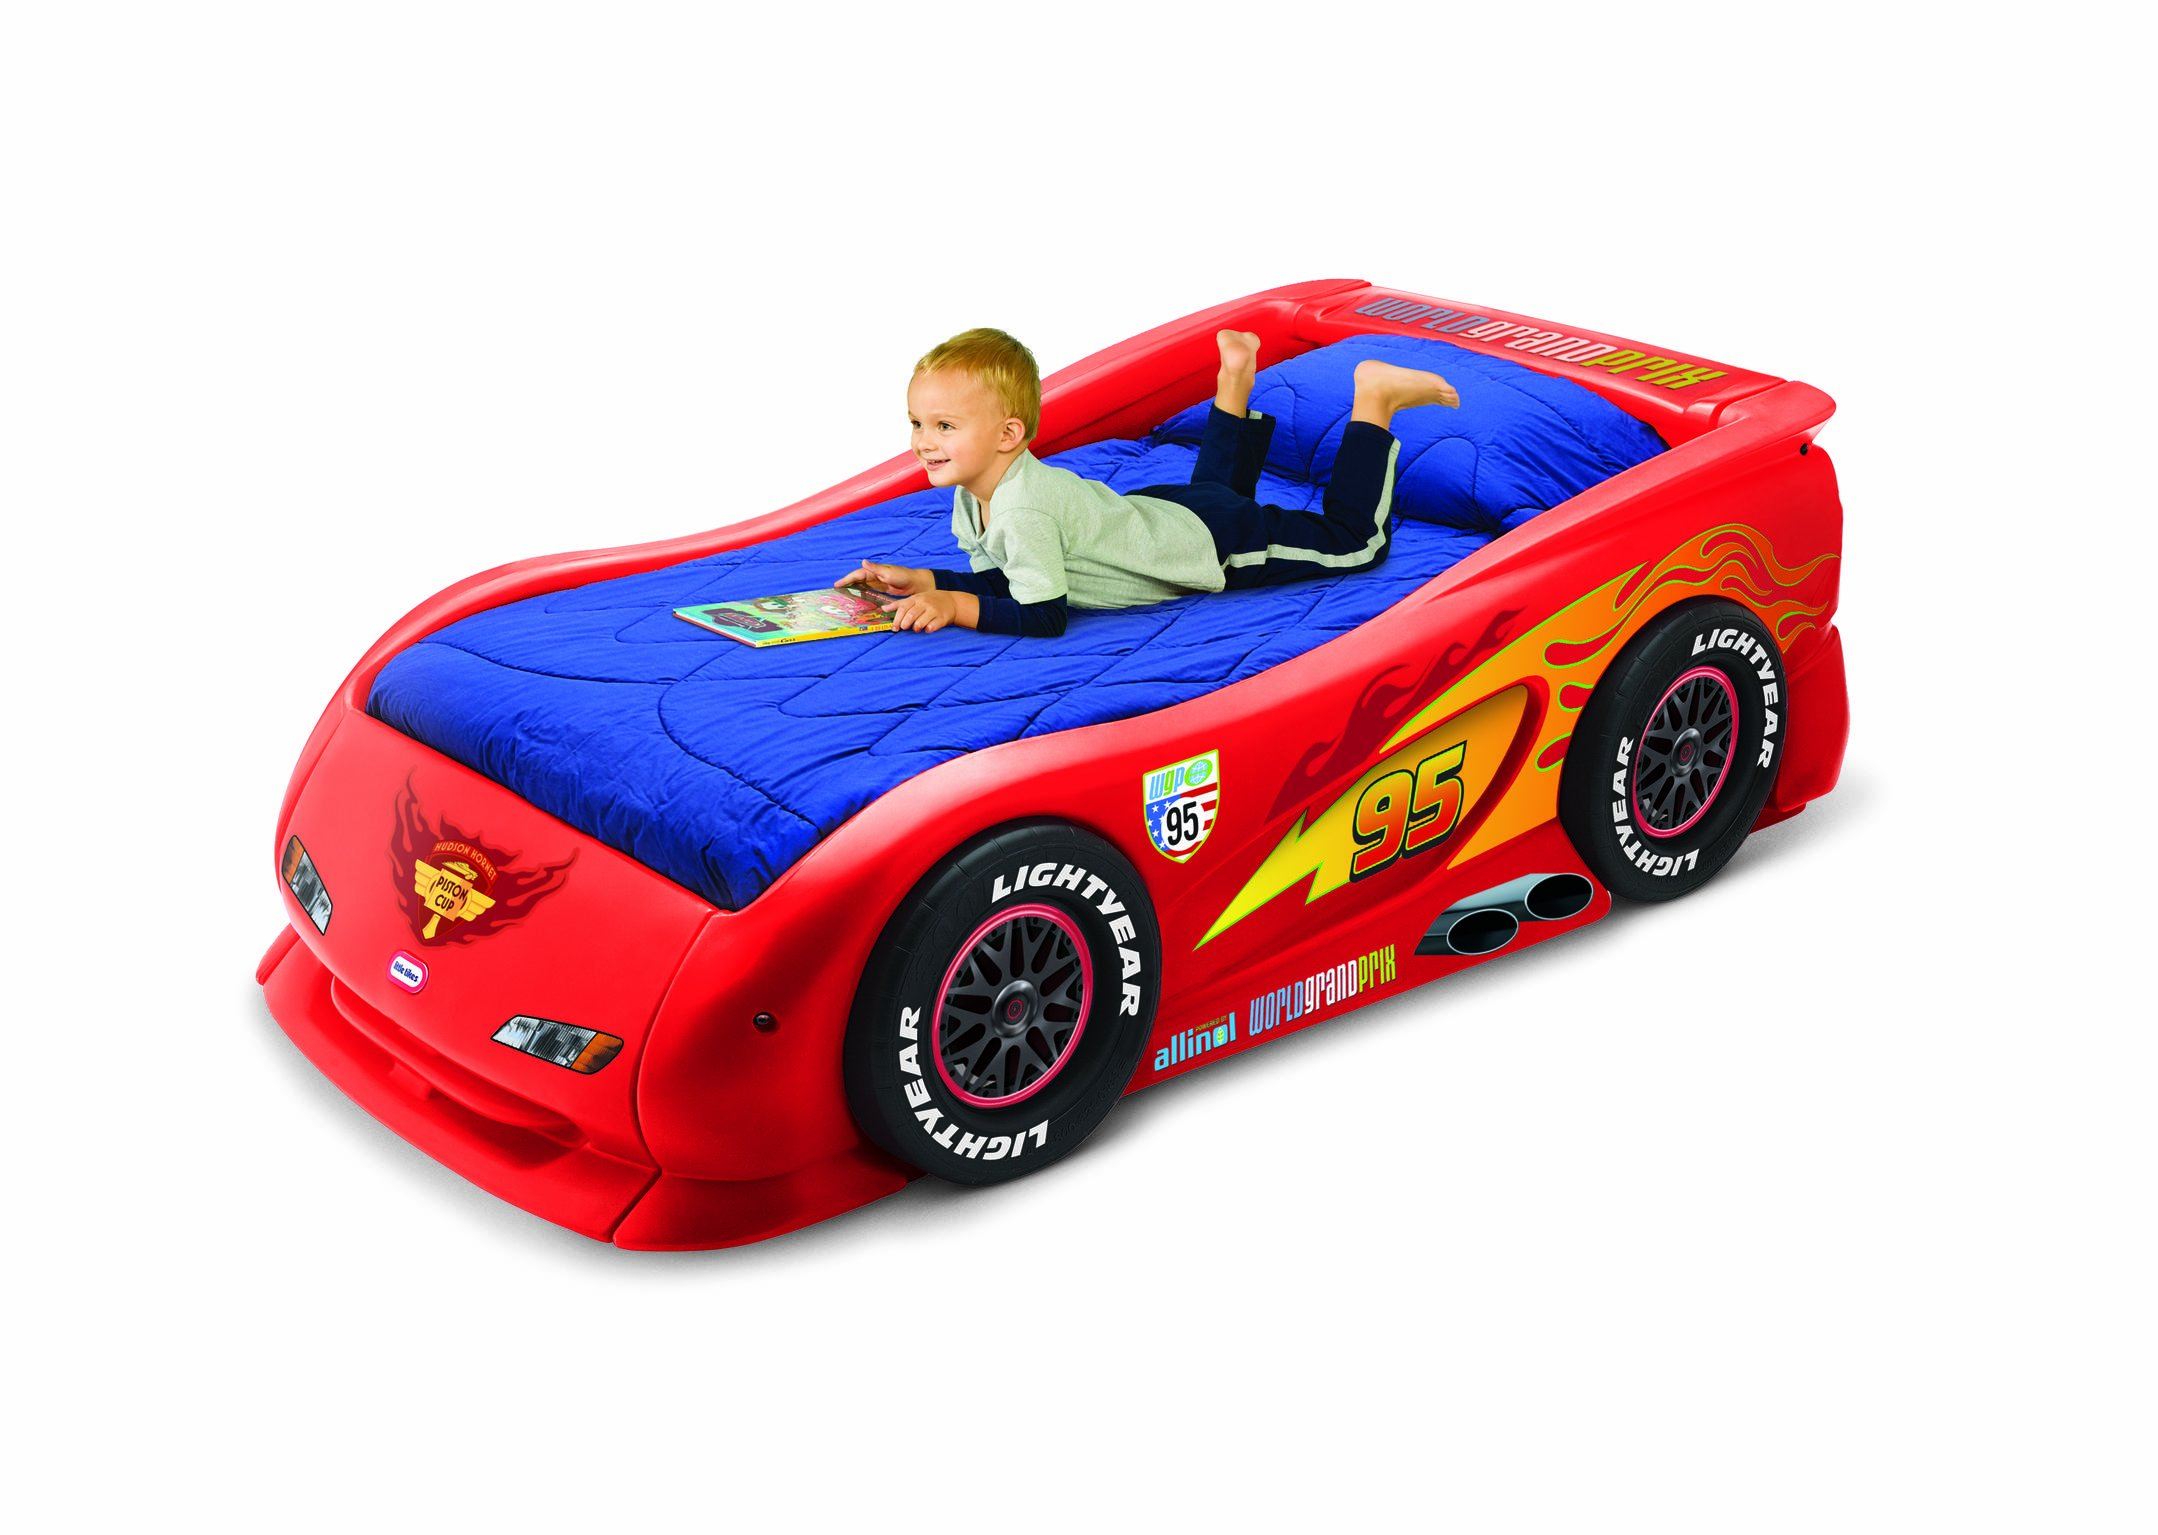 Little tikes thomas the train bed - Cars 2 Lightning Mcqueen Sports Car Twin Bed